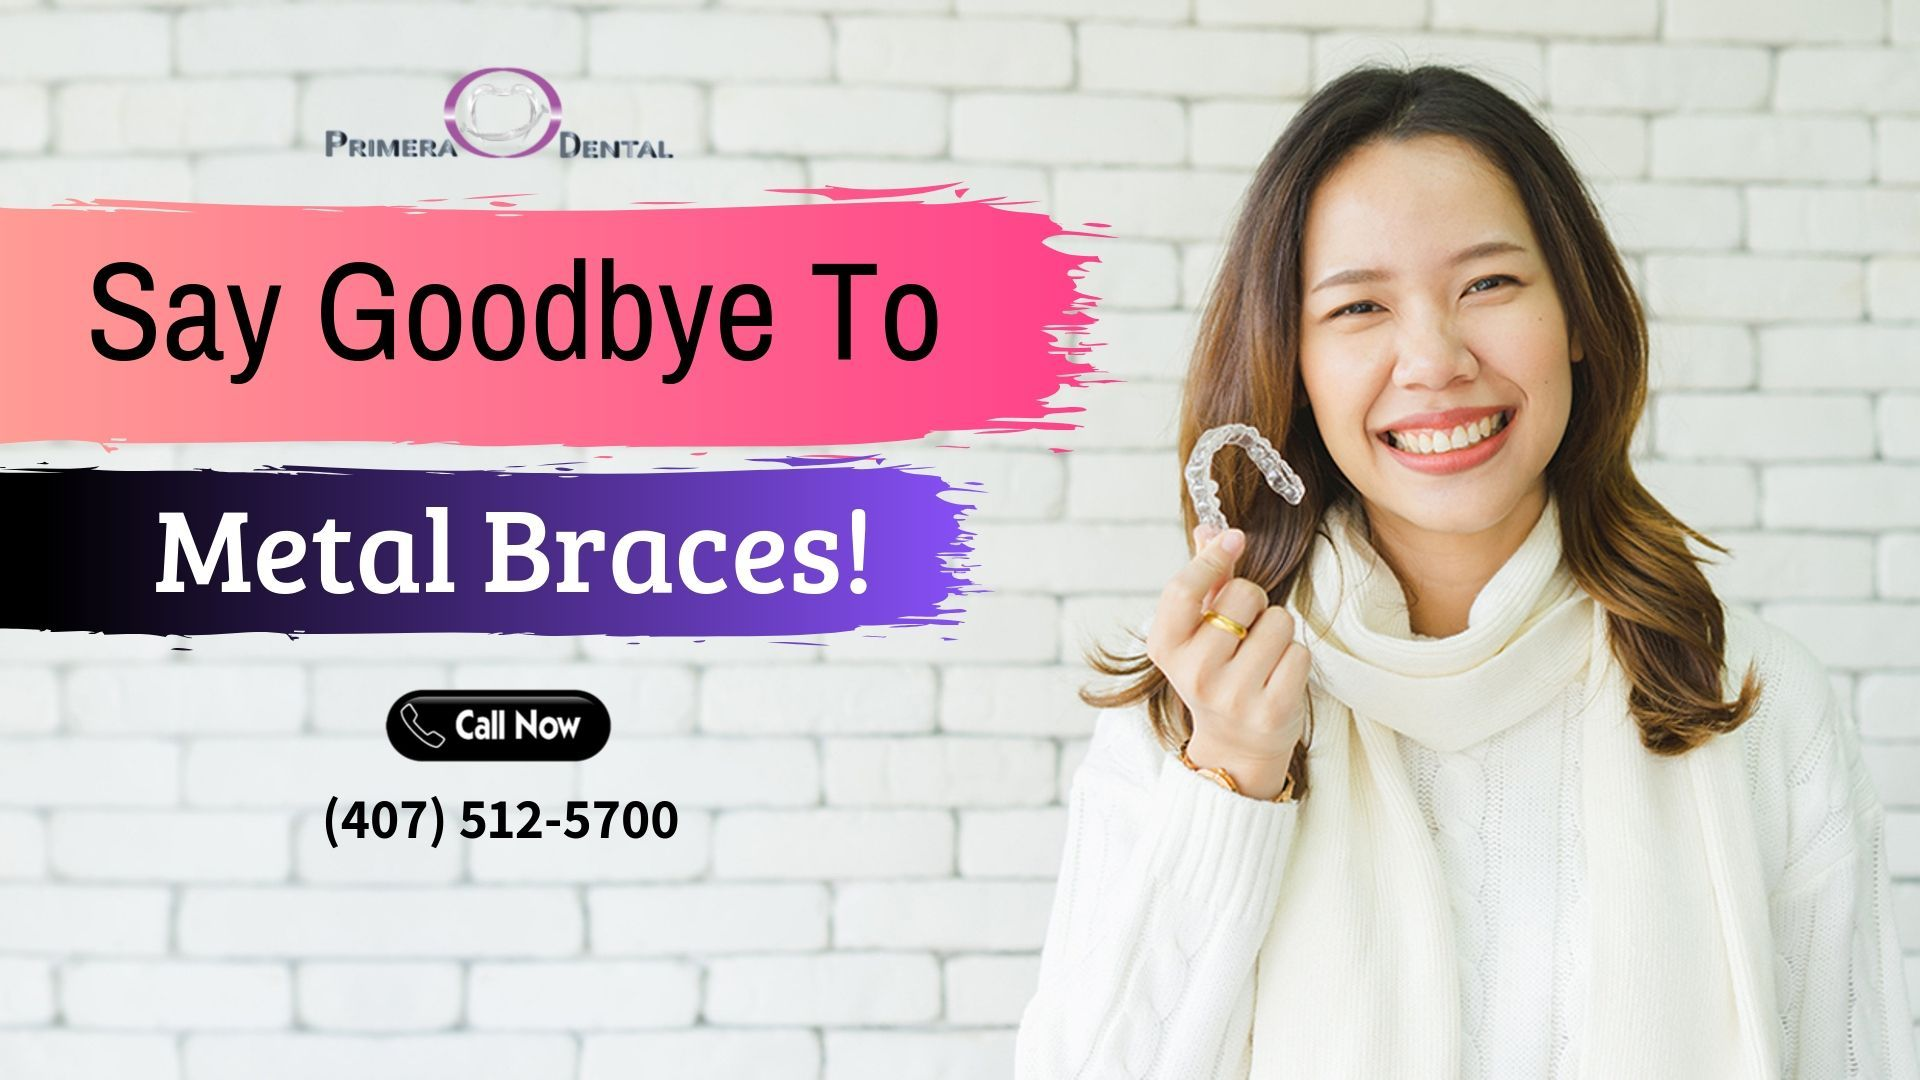 Want to straighten your teeth without braces? At Primera